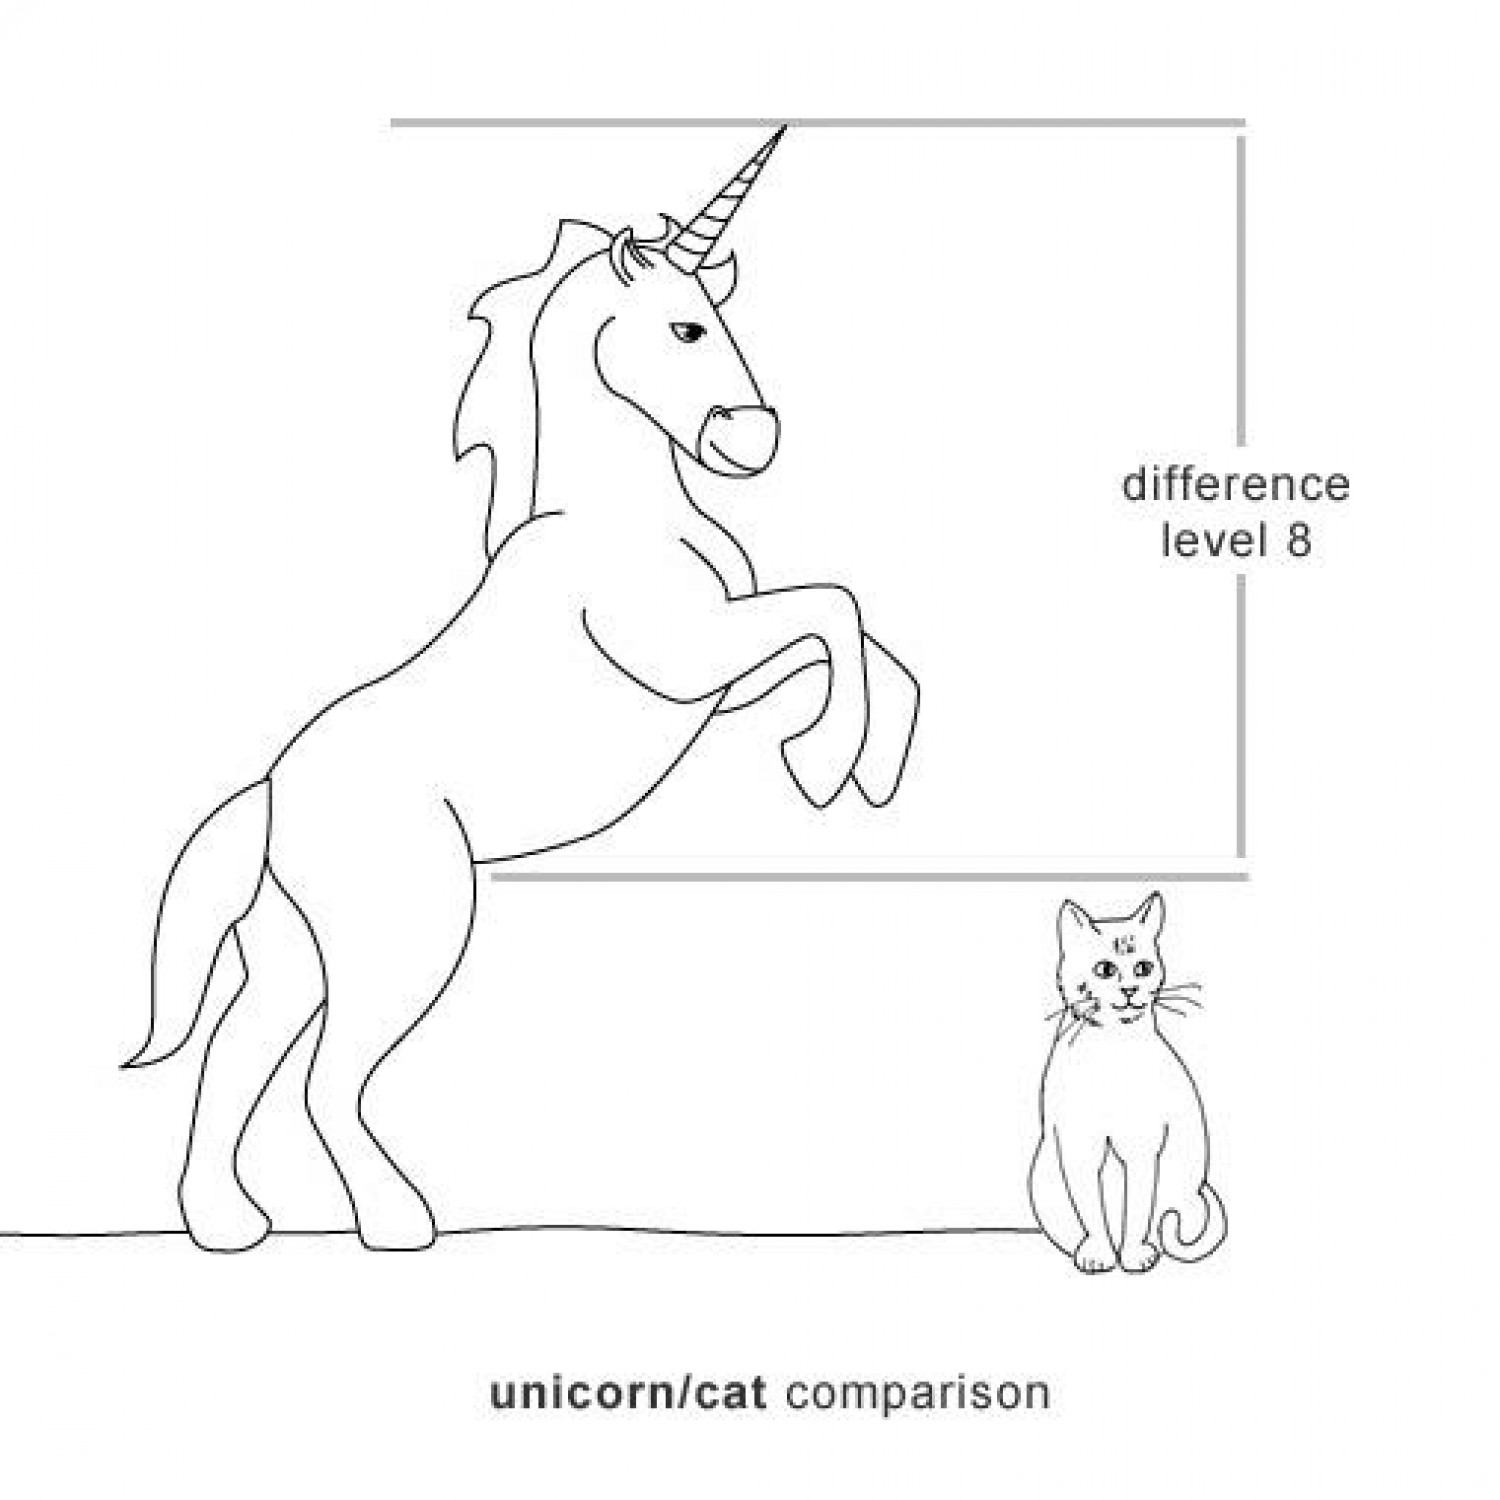 Unicorn - cat comparison  Infographic